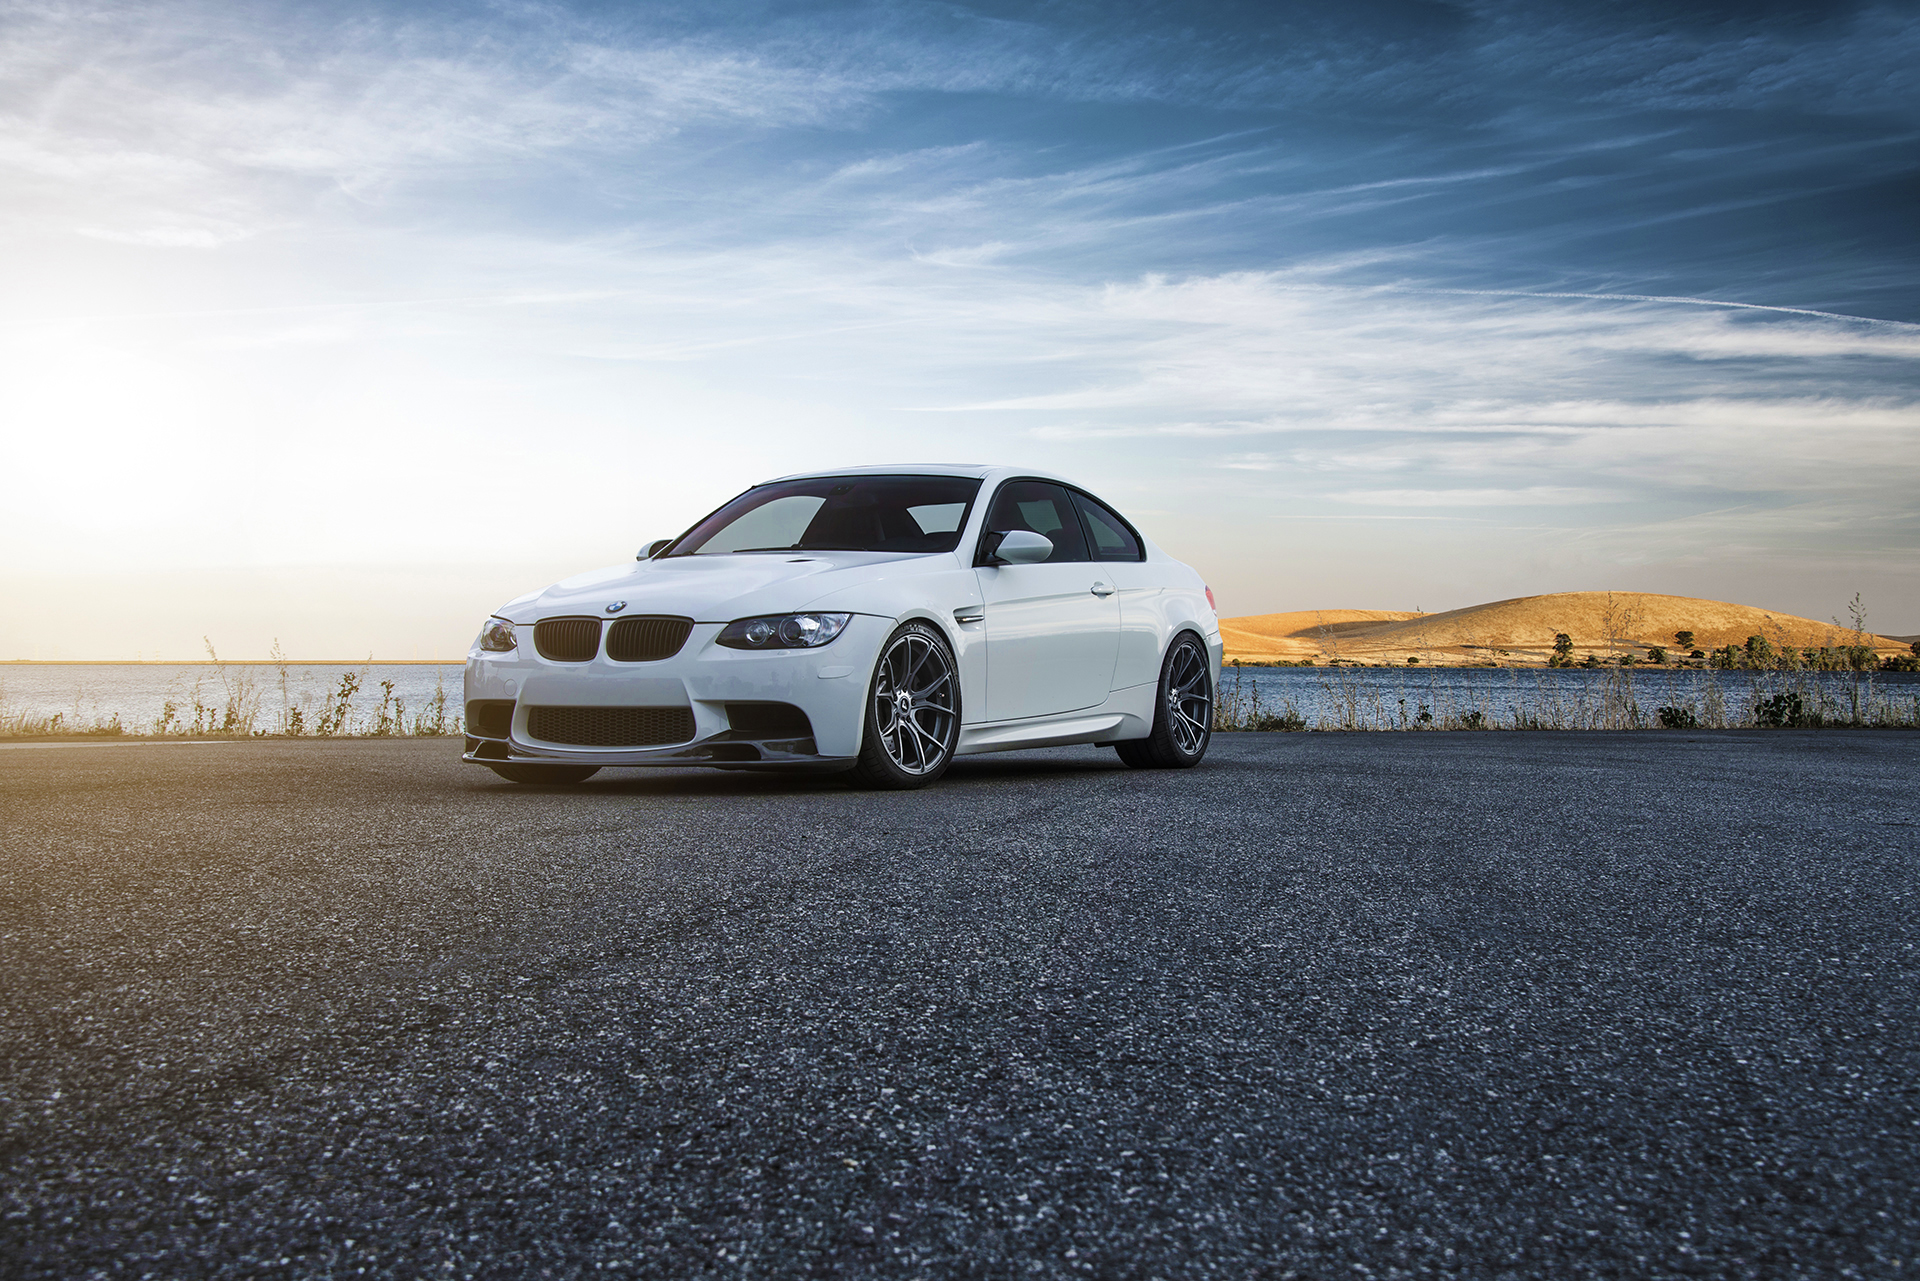 149809 free wallpaper 480x800 for phone, download images Bmw, Cars, Side View, M3, E92 480x800 for mobile